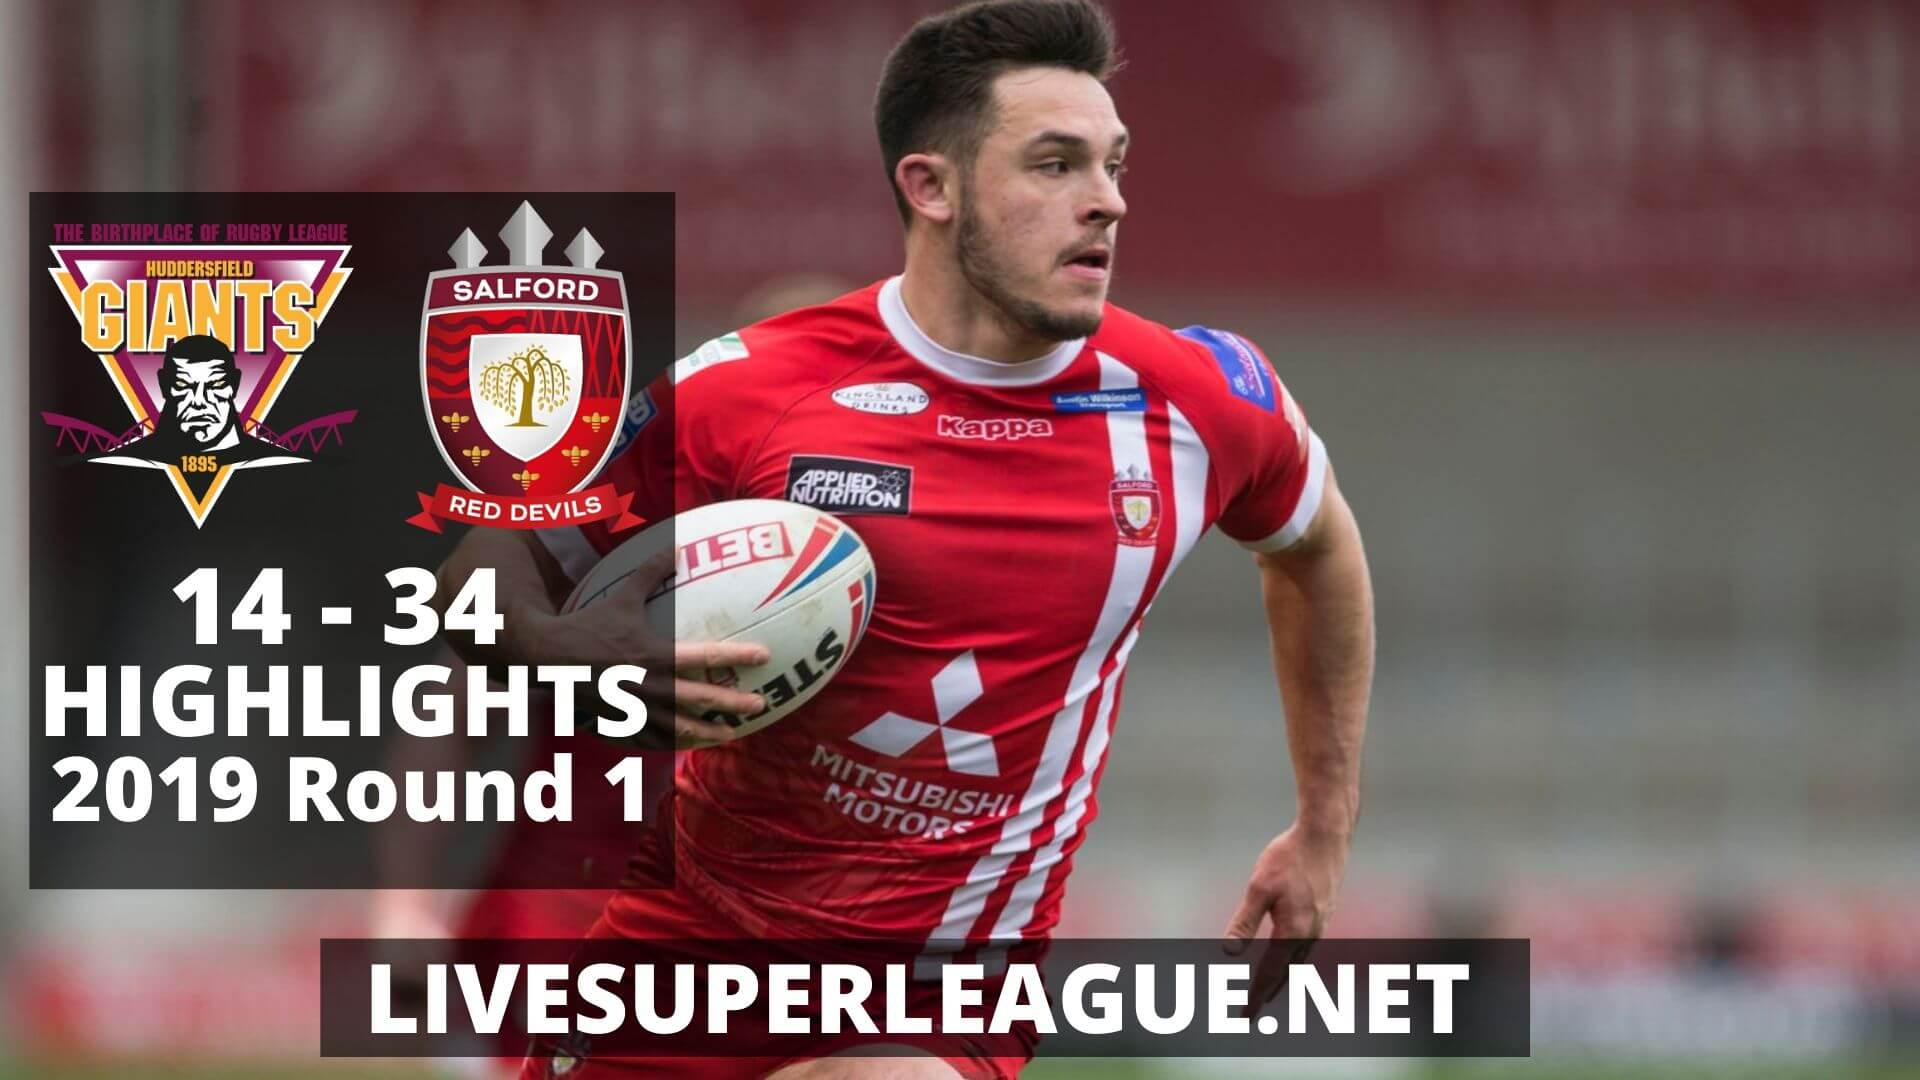 Huddersfield Giants Vs Salford Red Devils Highlights 2019 Round 1